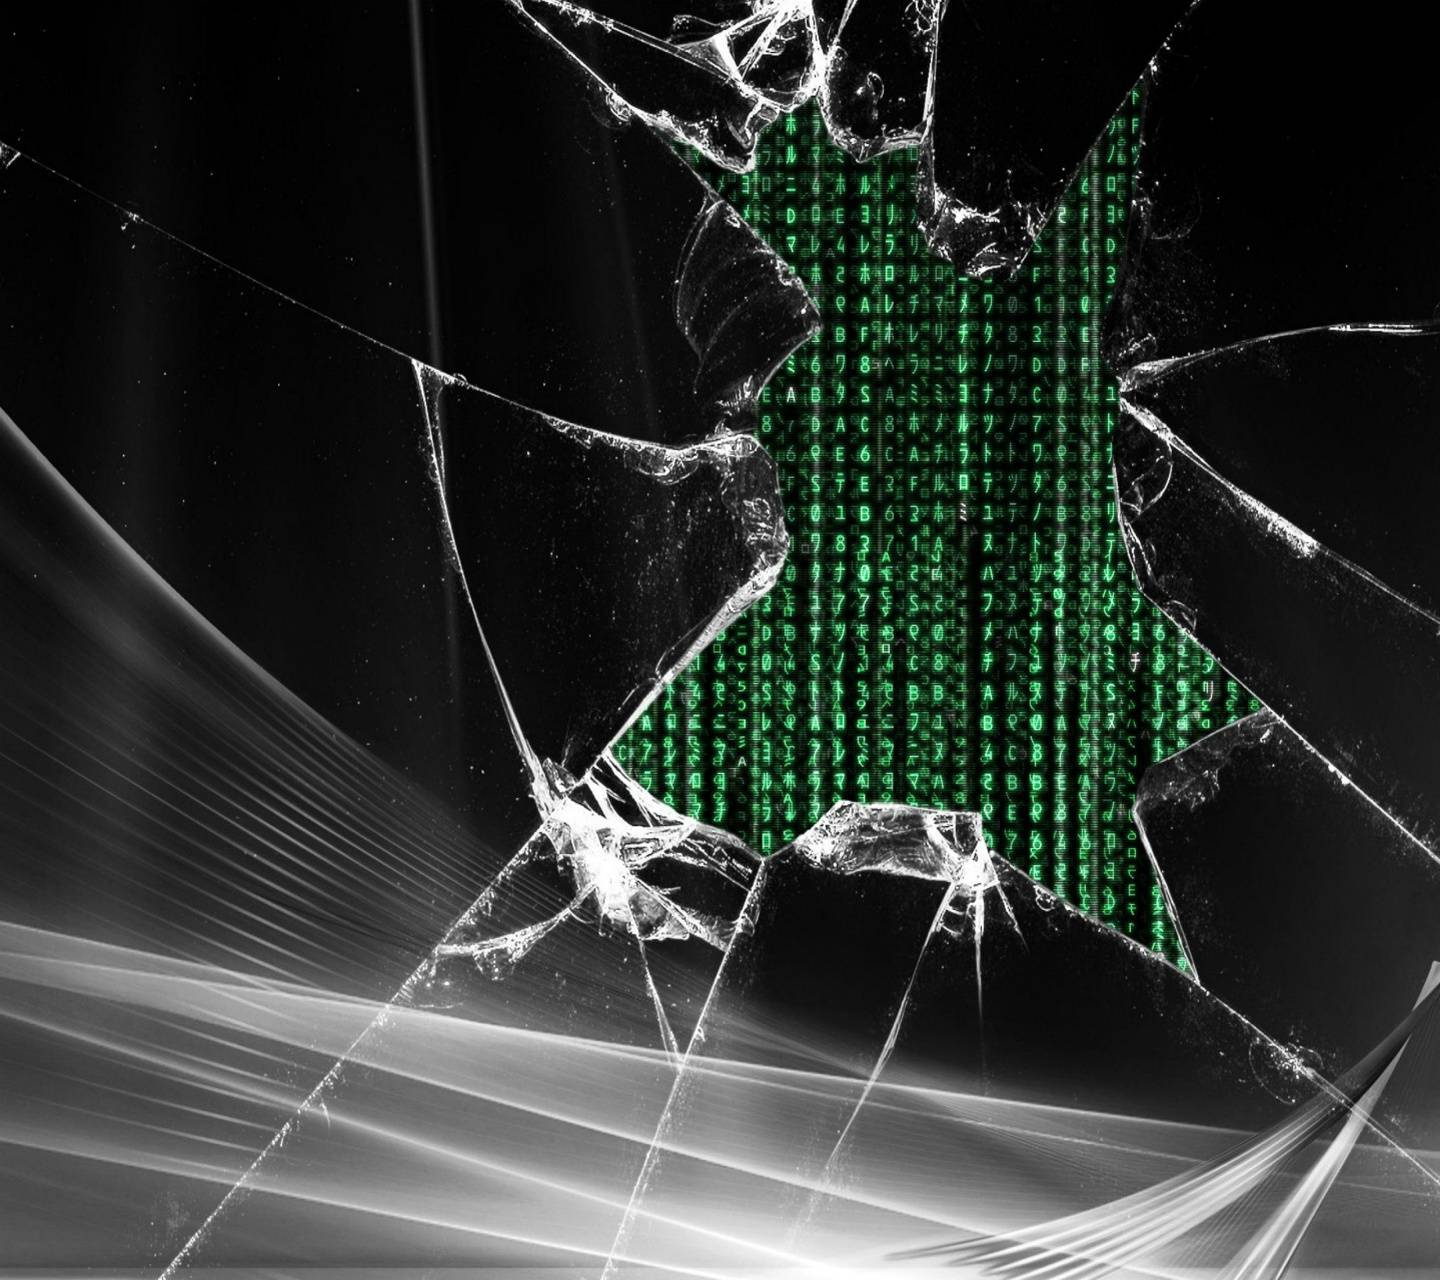 Broken Screen Wallpaper: Broken Screen Wallpaper By __LOV3ABL3__